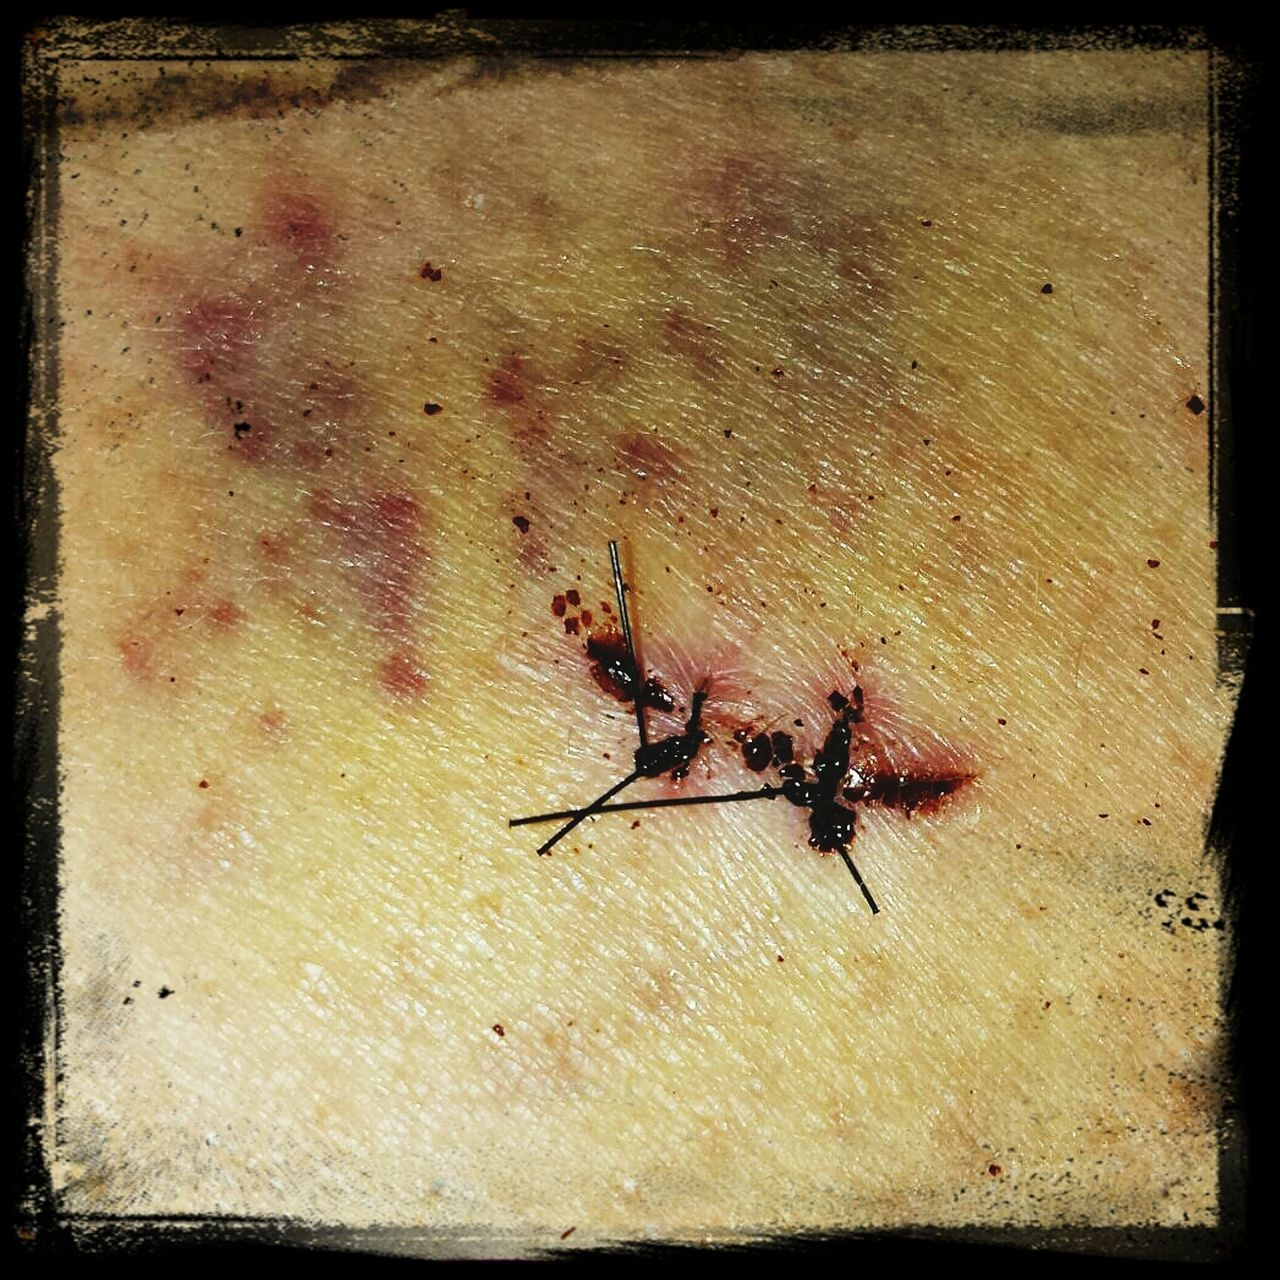 My first stab wound Stitches Stab Knife Flesh Wound